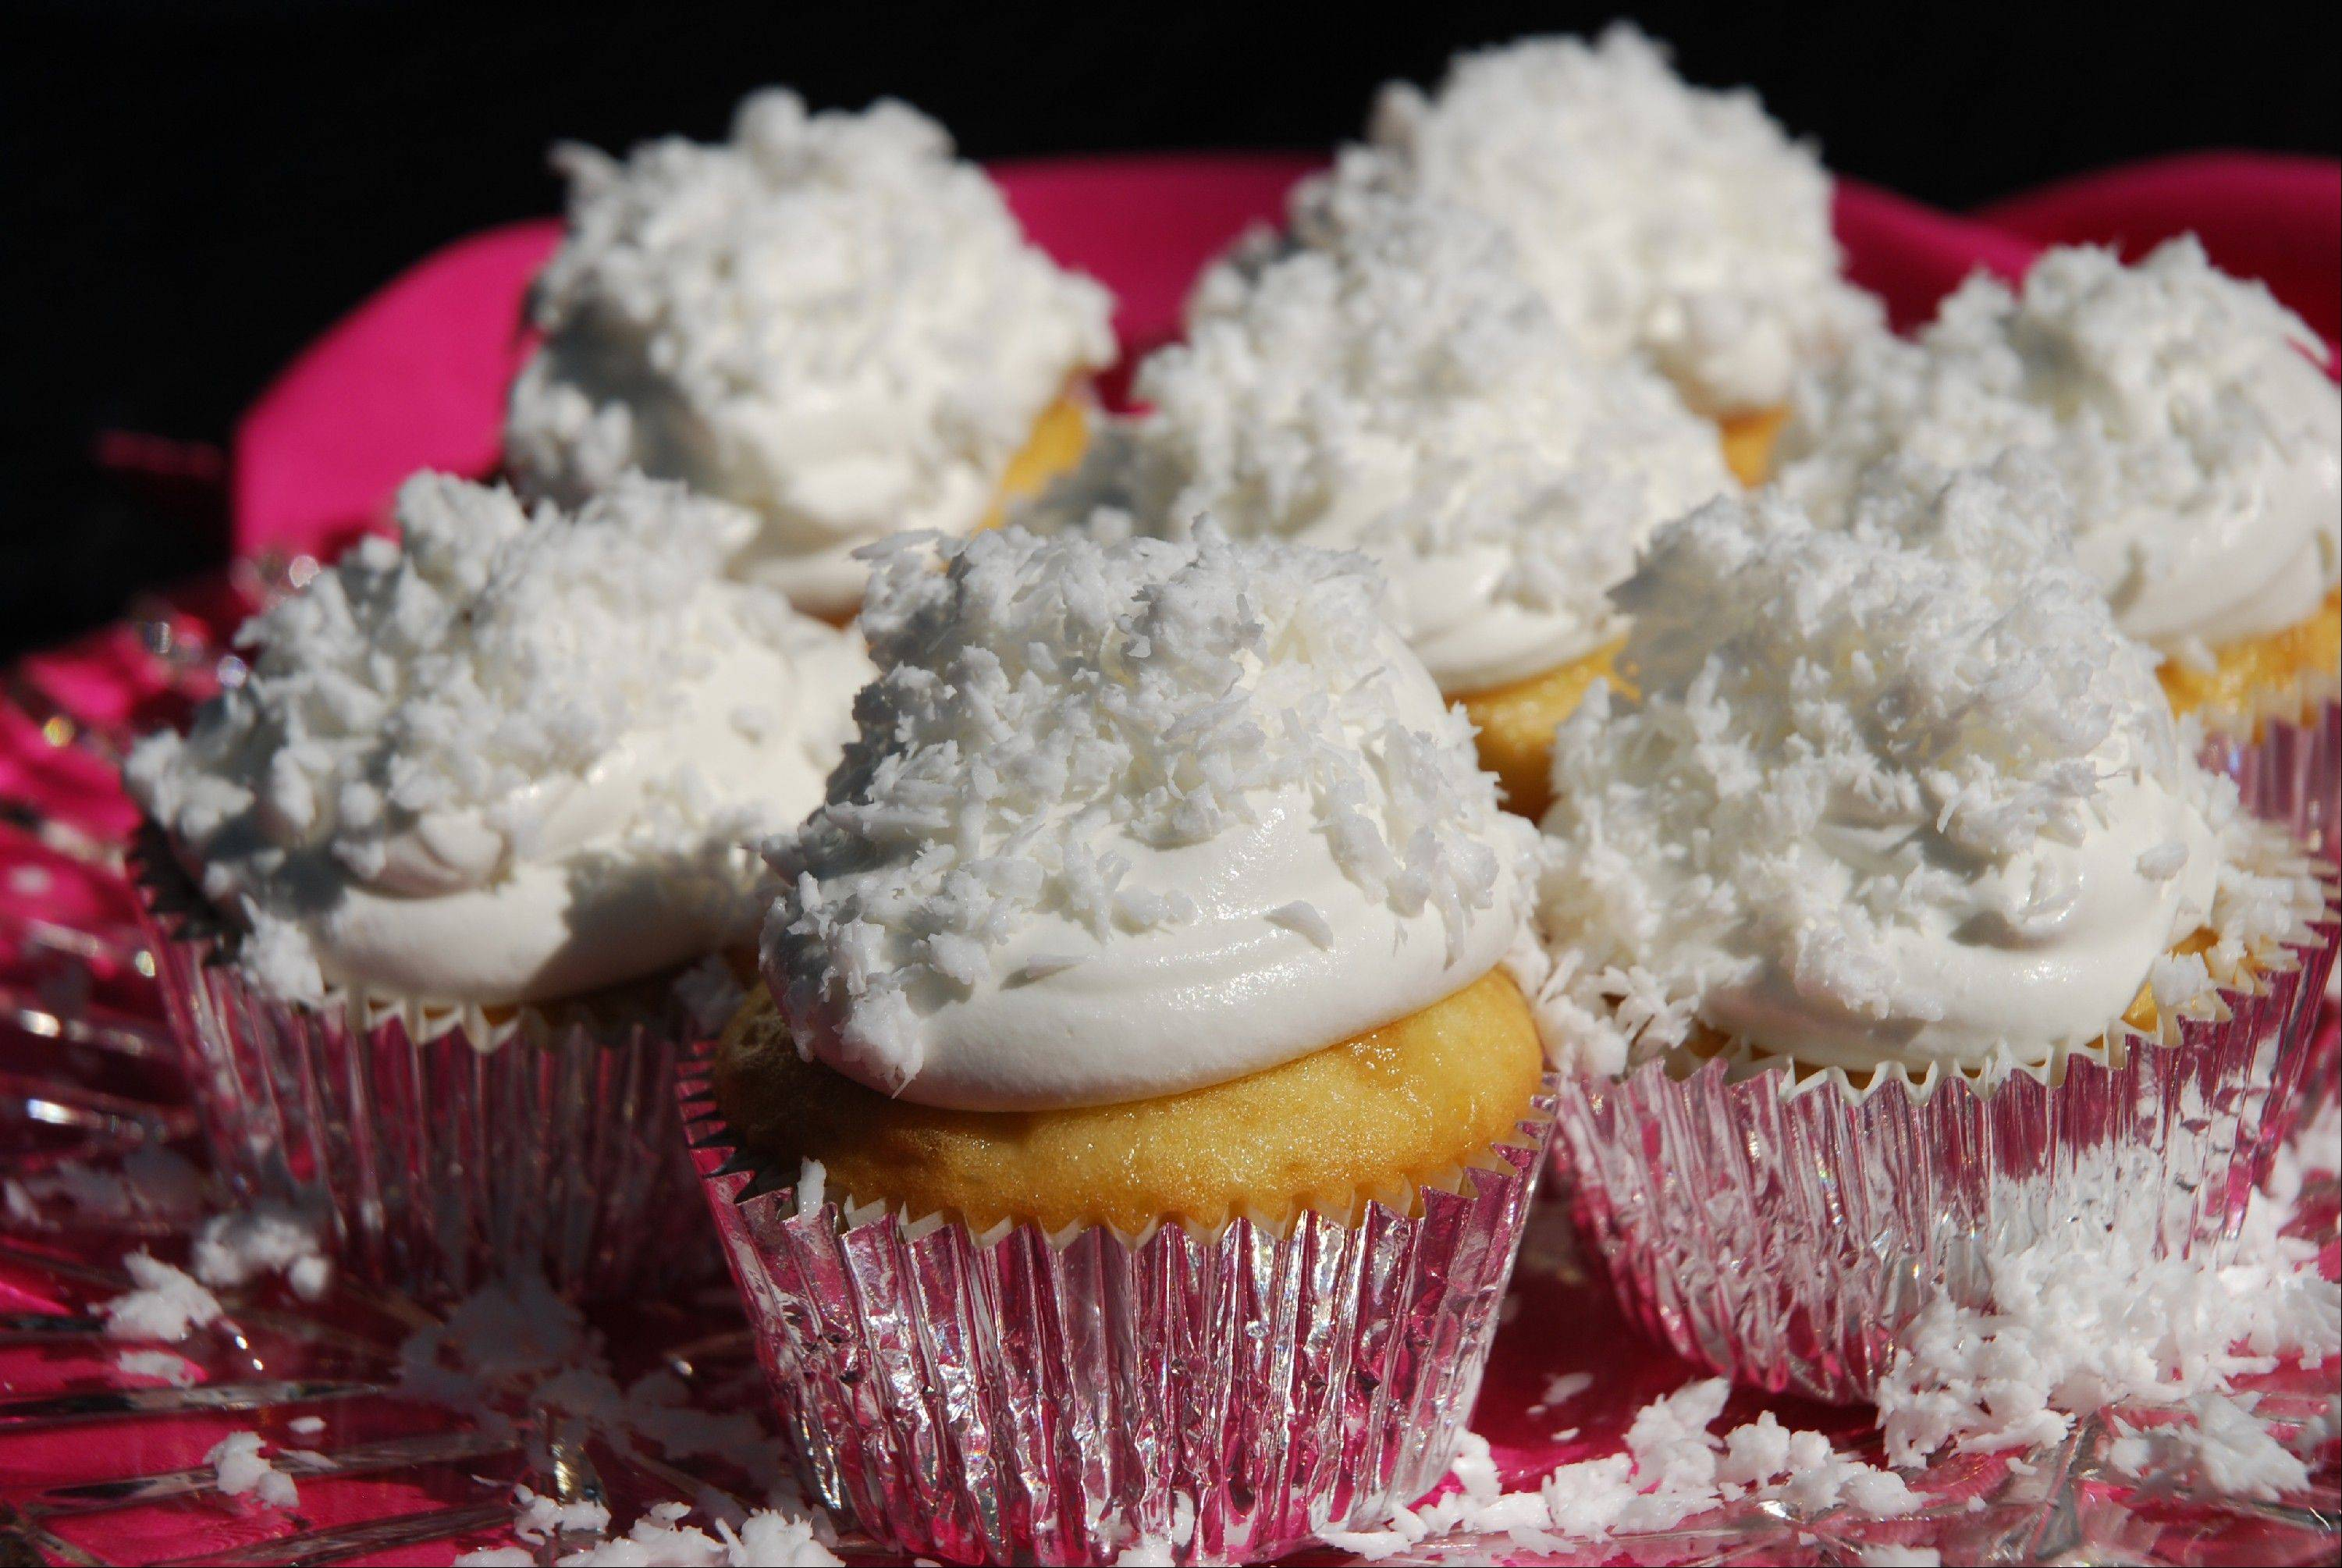 For the same price as one gourmet shop cupcake you can bake these Cuckoo Coconut Cupcakes at home.